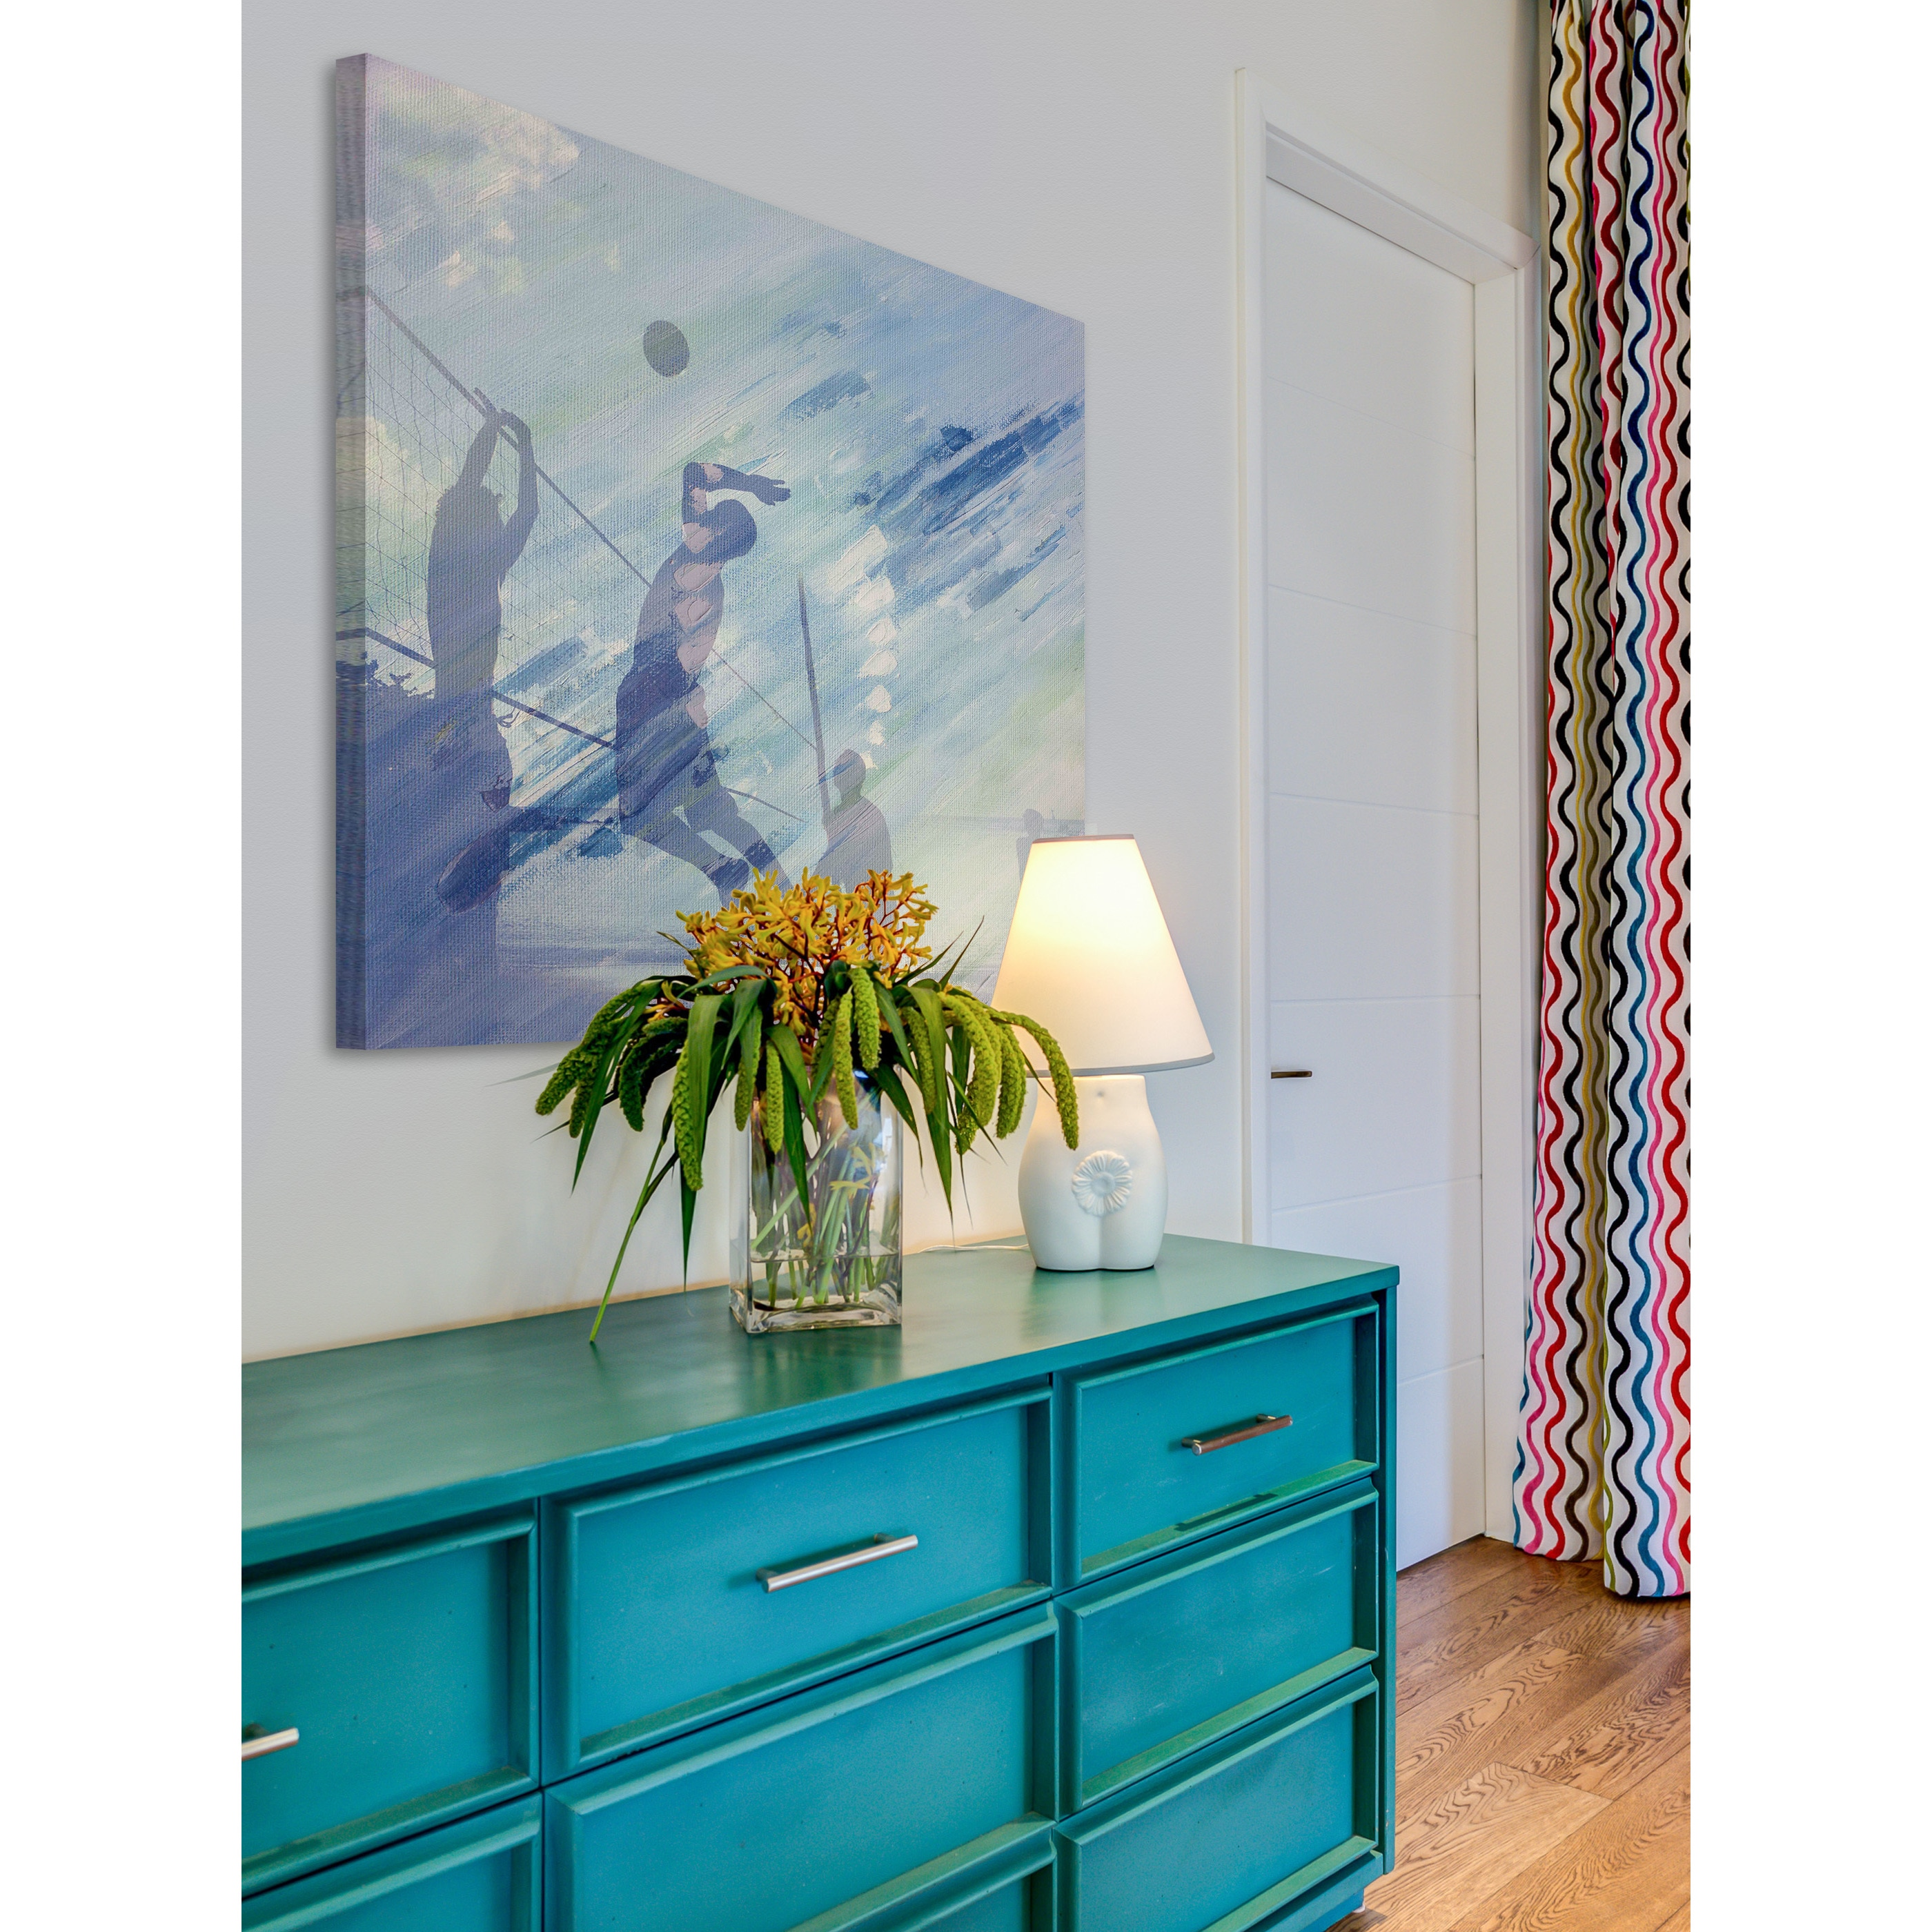 Volleyball Bedroom Decorating Ideas Html on volleyball drawing ideas, volleyball motivational ideas, creative volleyball ideas, volleyball locker decorations, volleyball treat bag ideas, volleyball sign ideas, volleyball wall decoration ideas, volleyball planning sheets, volleyball centerpiece ideas, volleyball craft ideas, volleyball high school ideas, volleyball painting ideas, volleyball home ideas, volleyball party ideas, volleyball scrapbook ideas, volleyball cupcakes ideas, volleyball cookies, volleyball valentine ideas, volleyball gift ideas, volleyball candy ideas,